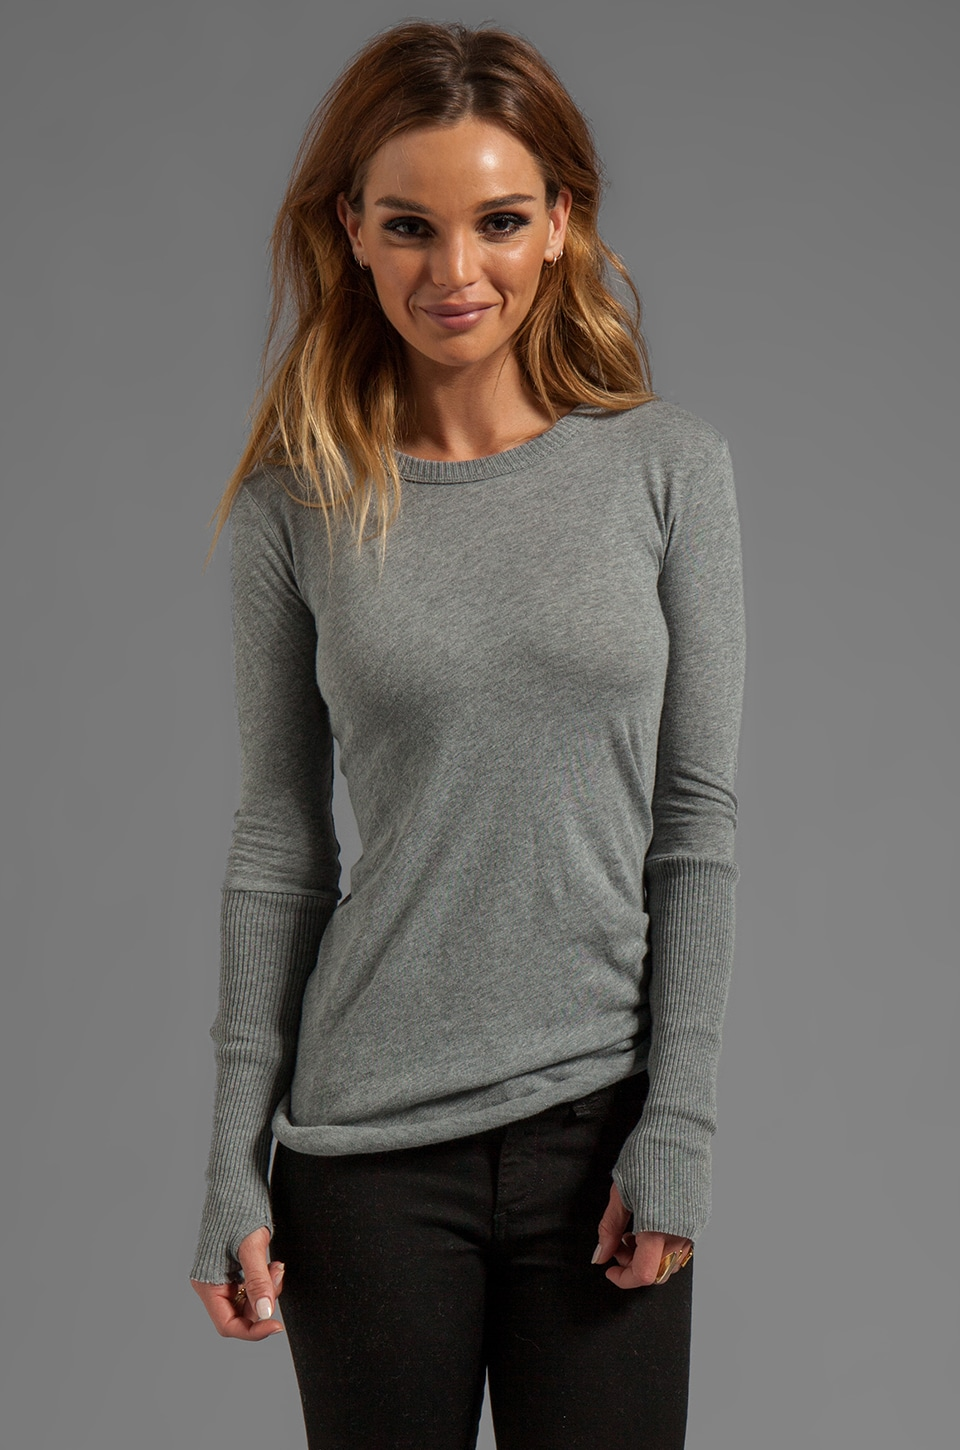 Enza Costa Cashmere Fitted Cuffed Crew Neck Sweater in Smoke